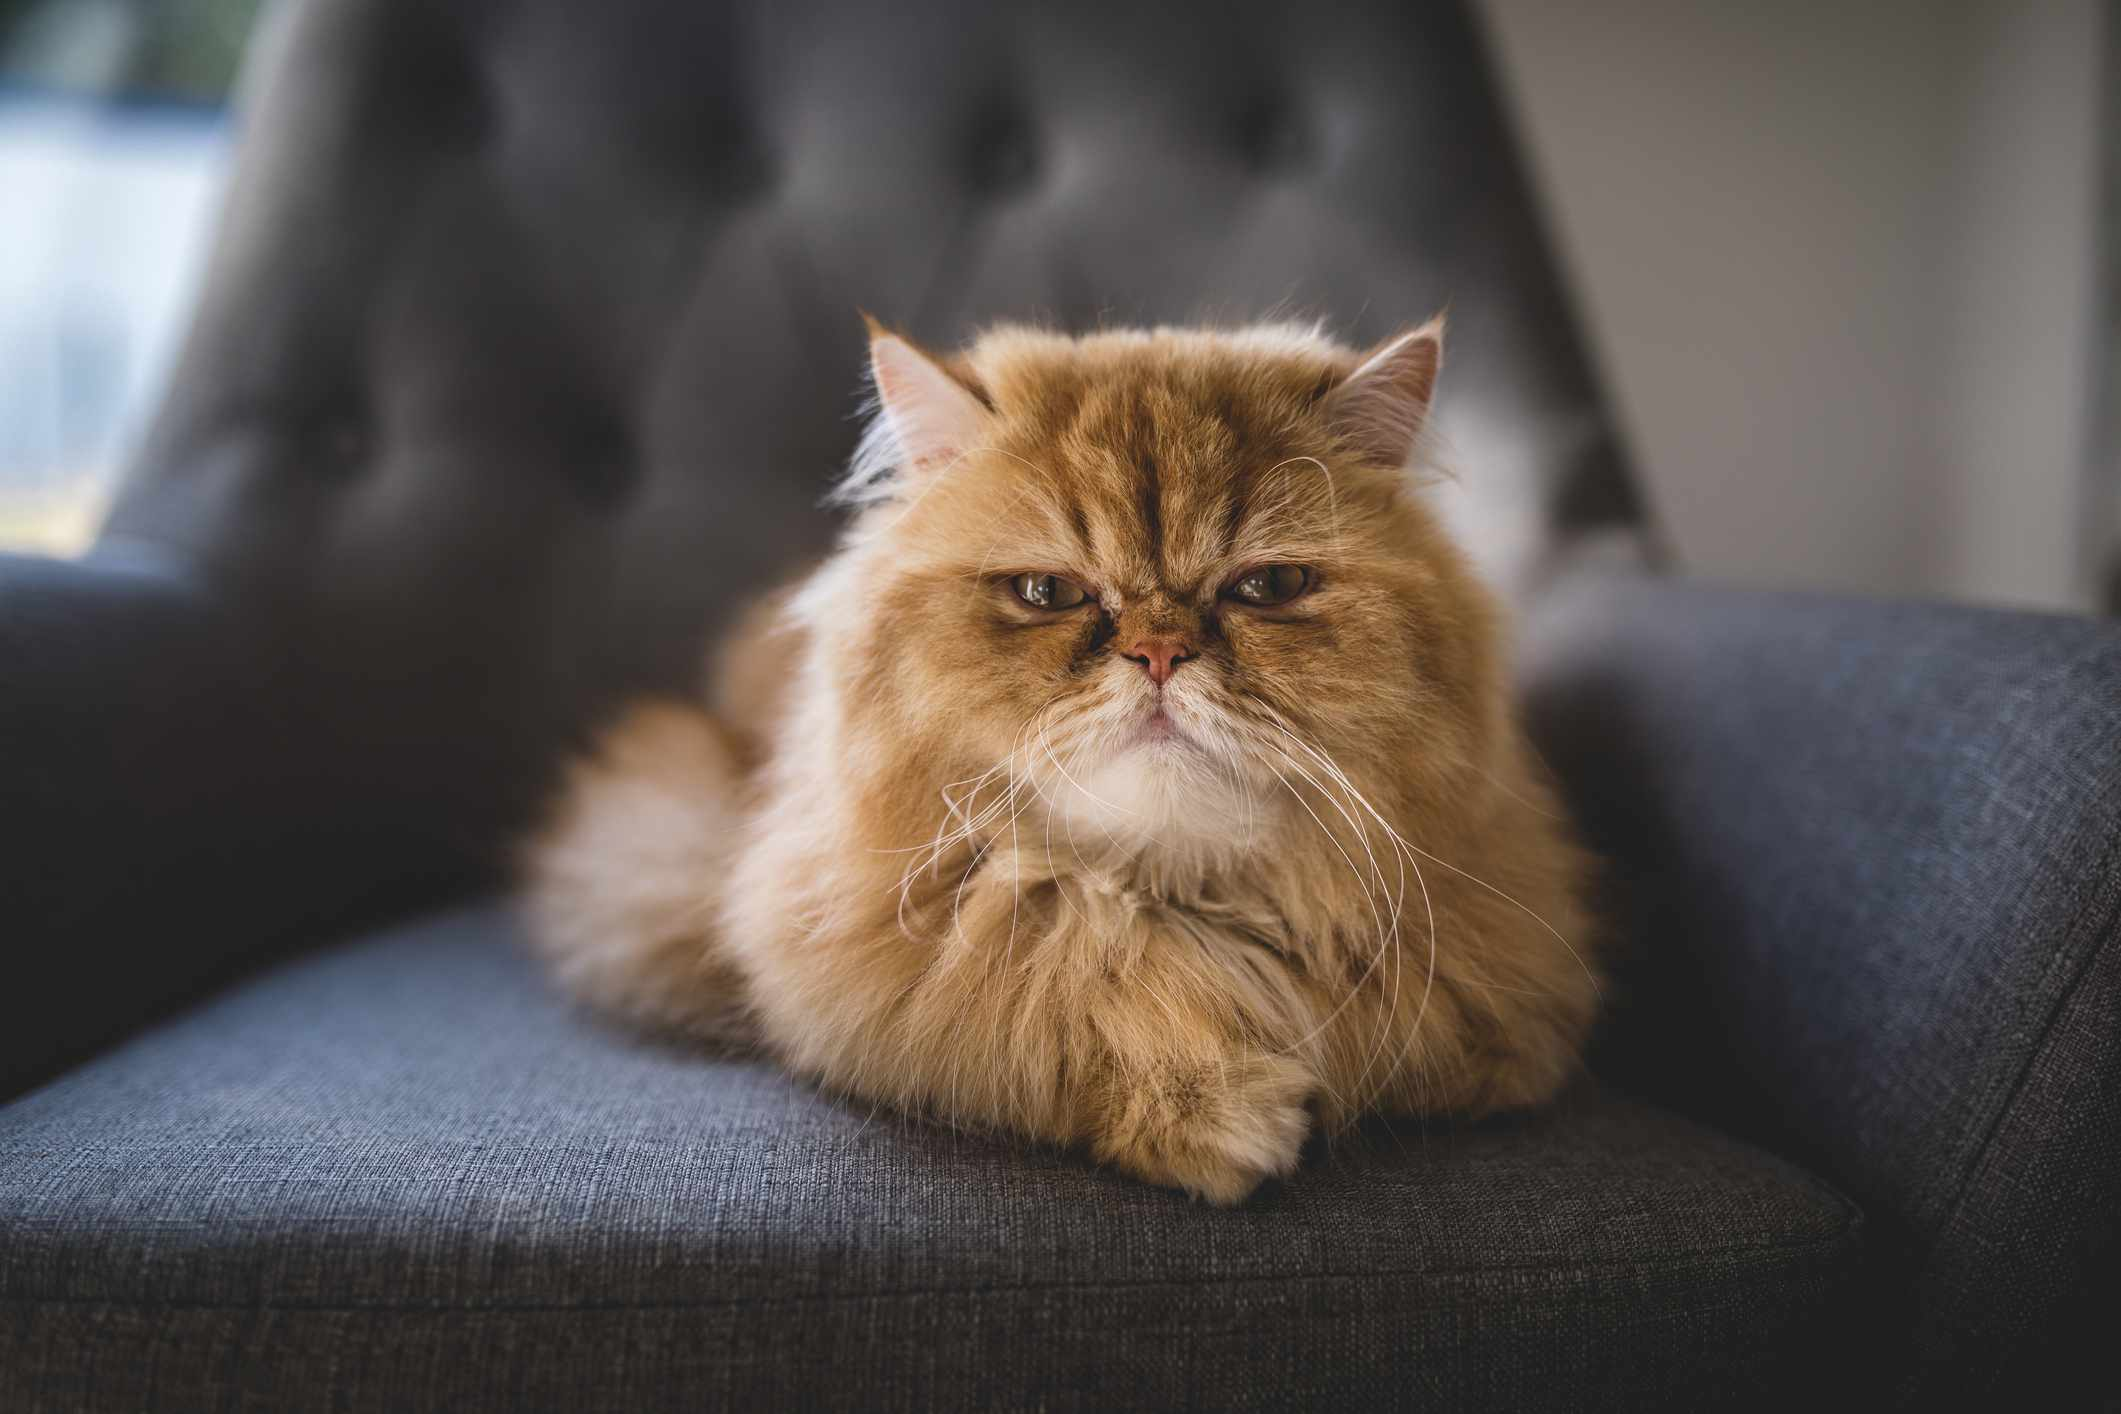 A flat-faced orange Persian cat staring at the camera laying on a plush chair.